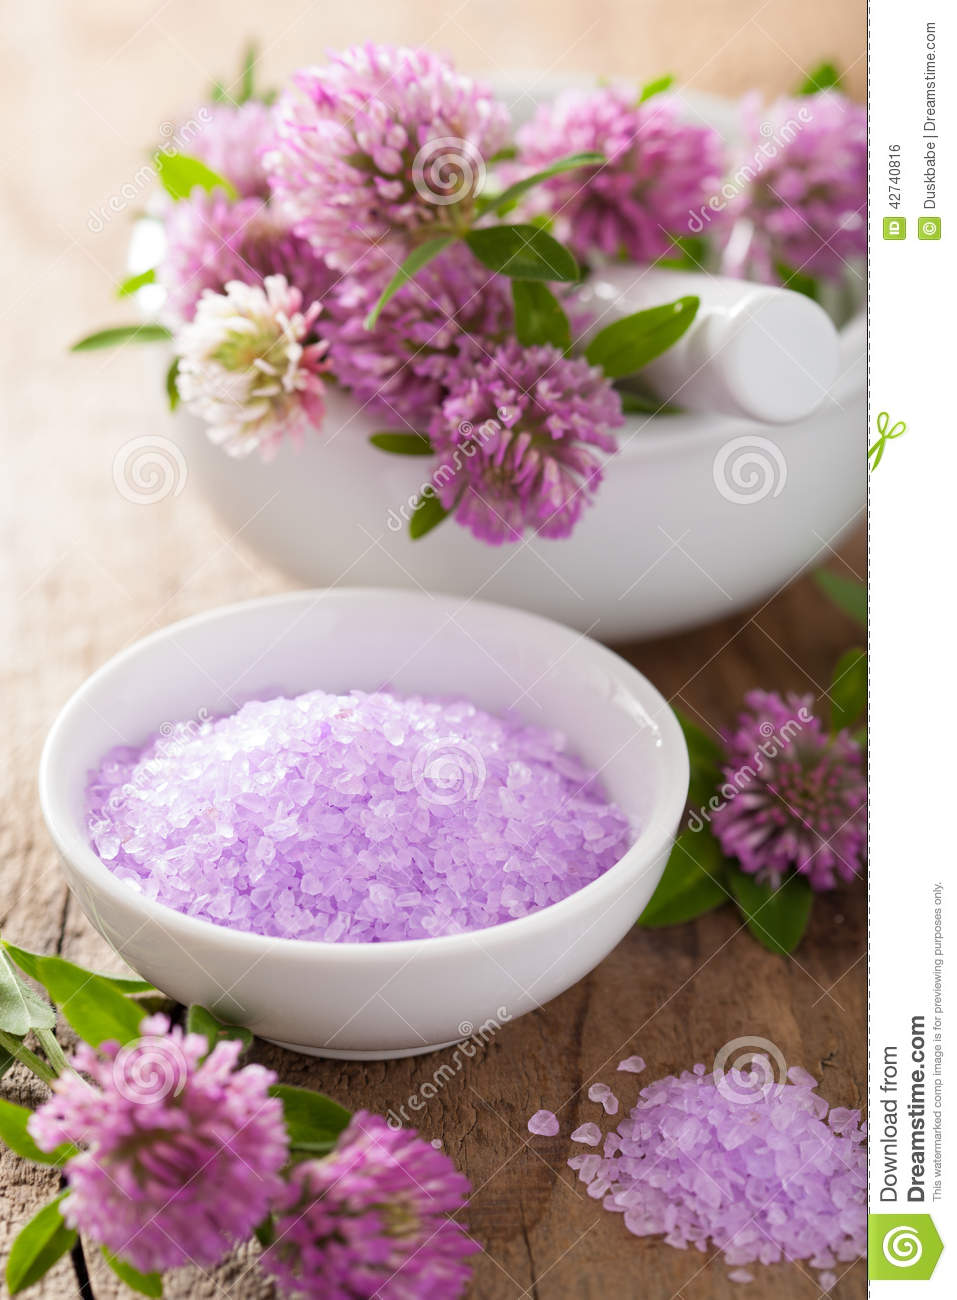 spa with purple herbal salt and clover flowers stock photo